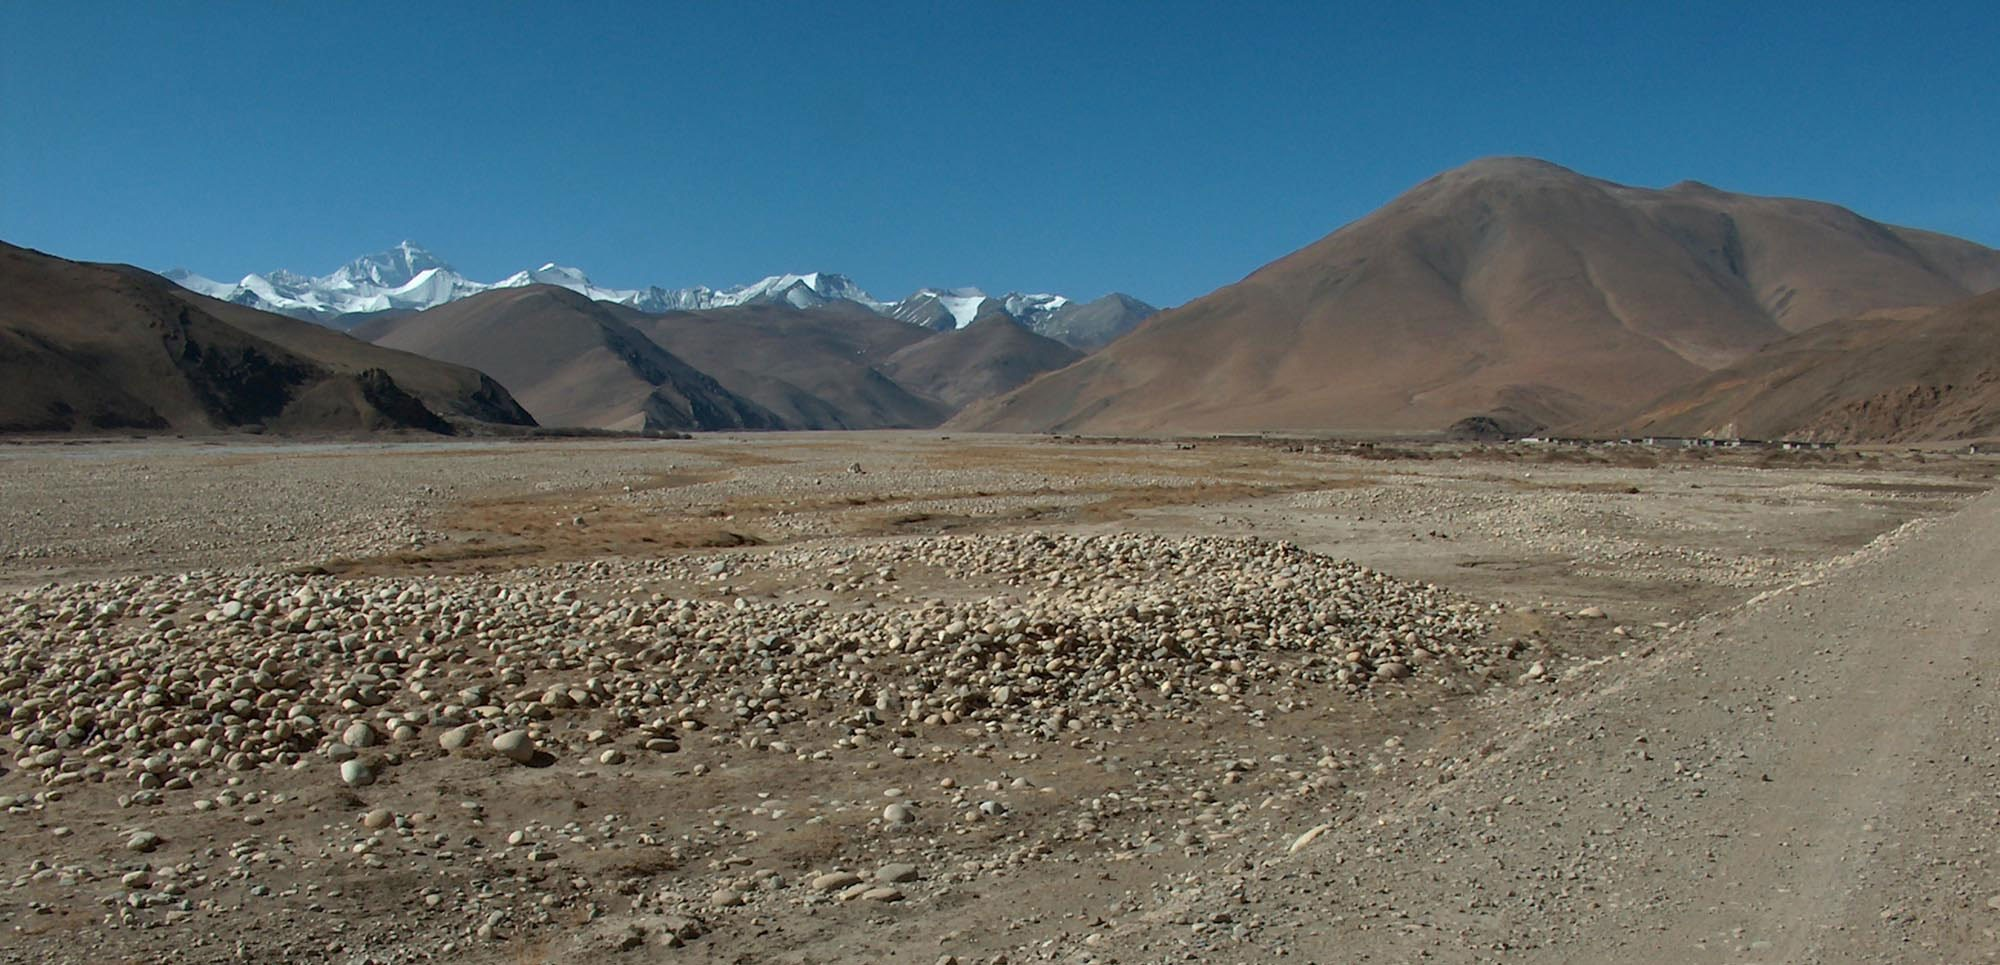 Mount Everest seen from the foothills in Tibet